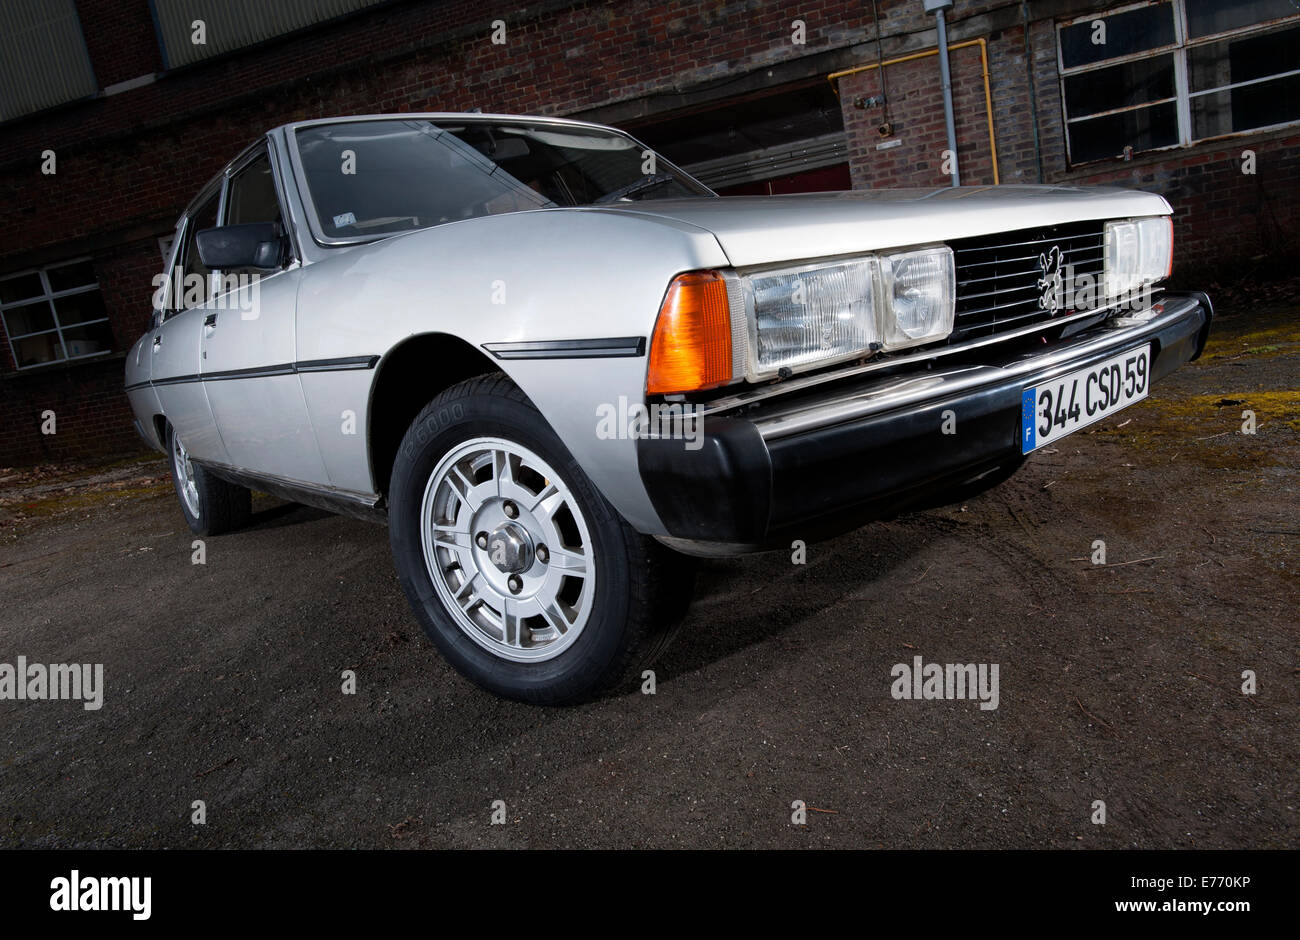 peugeot 604 french classic car early 80s model stock photo royalty free image 73298282 alamy. Black Bedroom Furniture Sets. Home Design Ideas